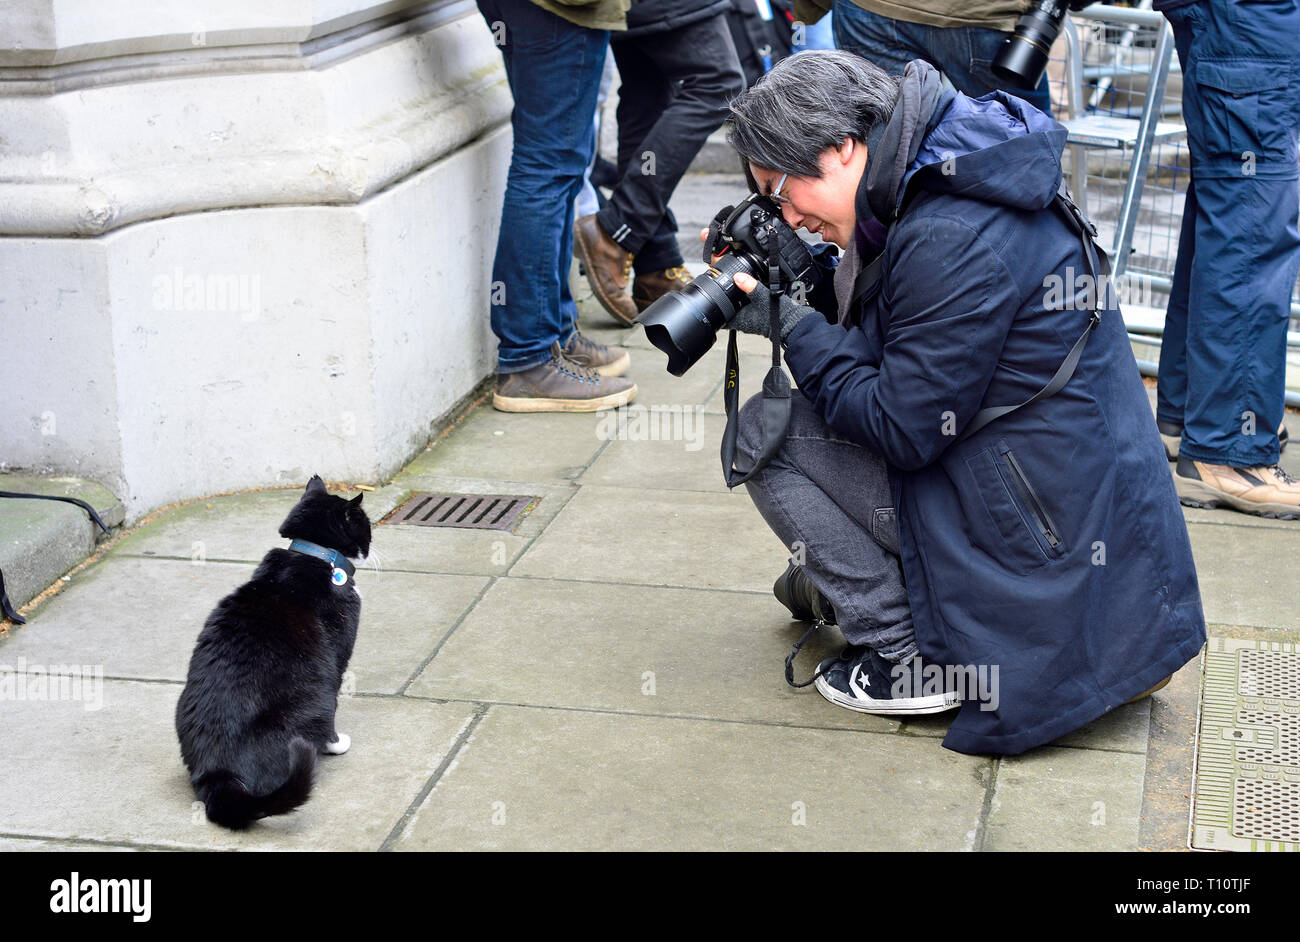 Palmerston - chief Mouser to the Foreign Office - being photographed (by Justin Ng) in Downing Street, Westminster, Feb 2019 - Stock Image